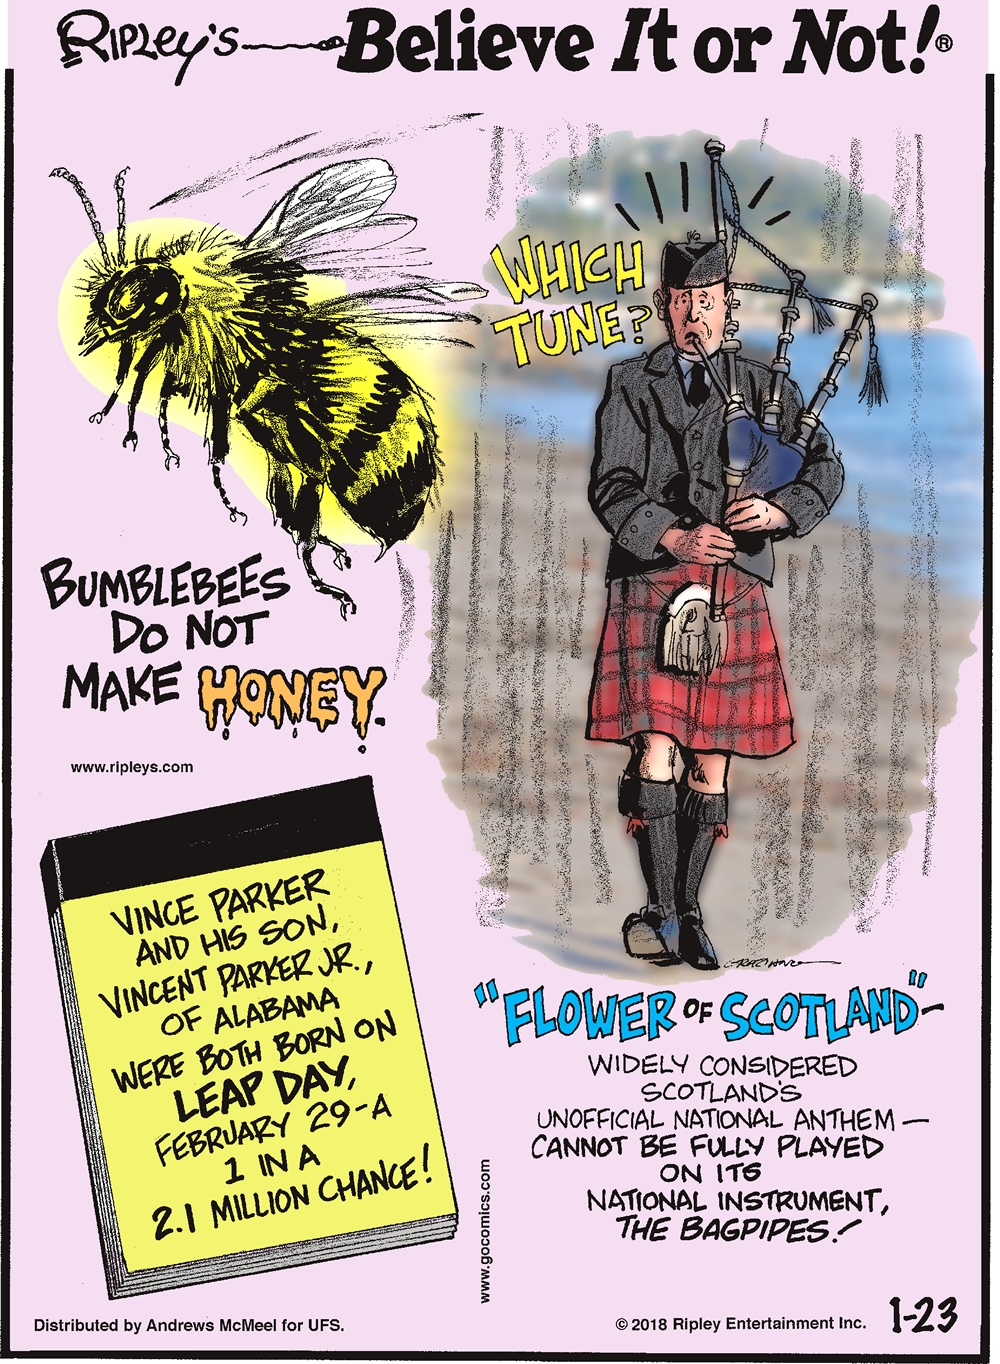 """Bumblebees do not make honey.-------------------- Vince Parker and his son, Vincent Parker JR., of Alabama were both born on Leap Day, February 29 - a 1 in a 2.1 million chance!-------------------- """"Flower of Scotland"""" - widely considered Scotland's unofficial national anthem - cannot be fully played on its national instrument, the bagpipes!"""